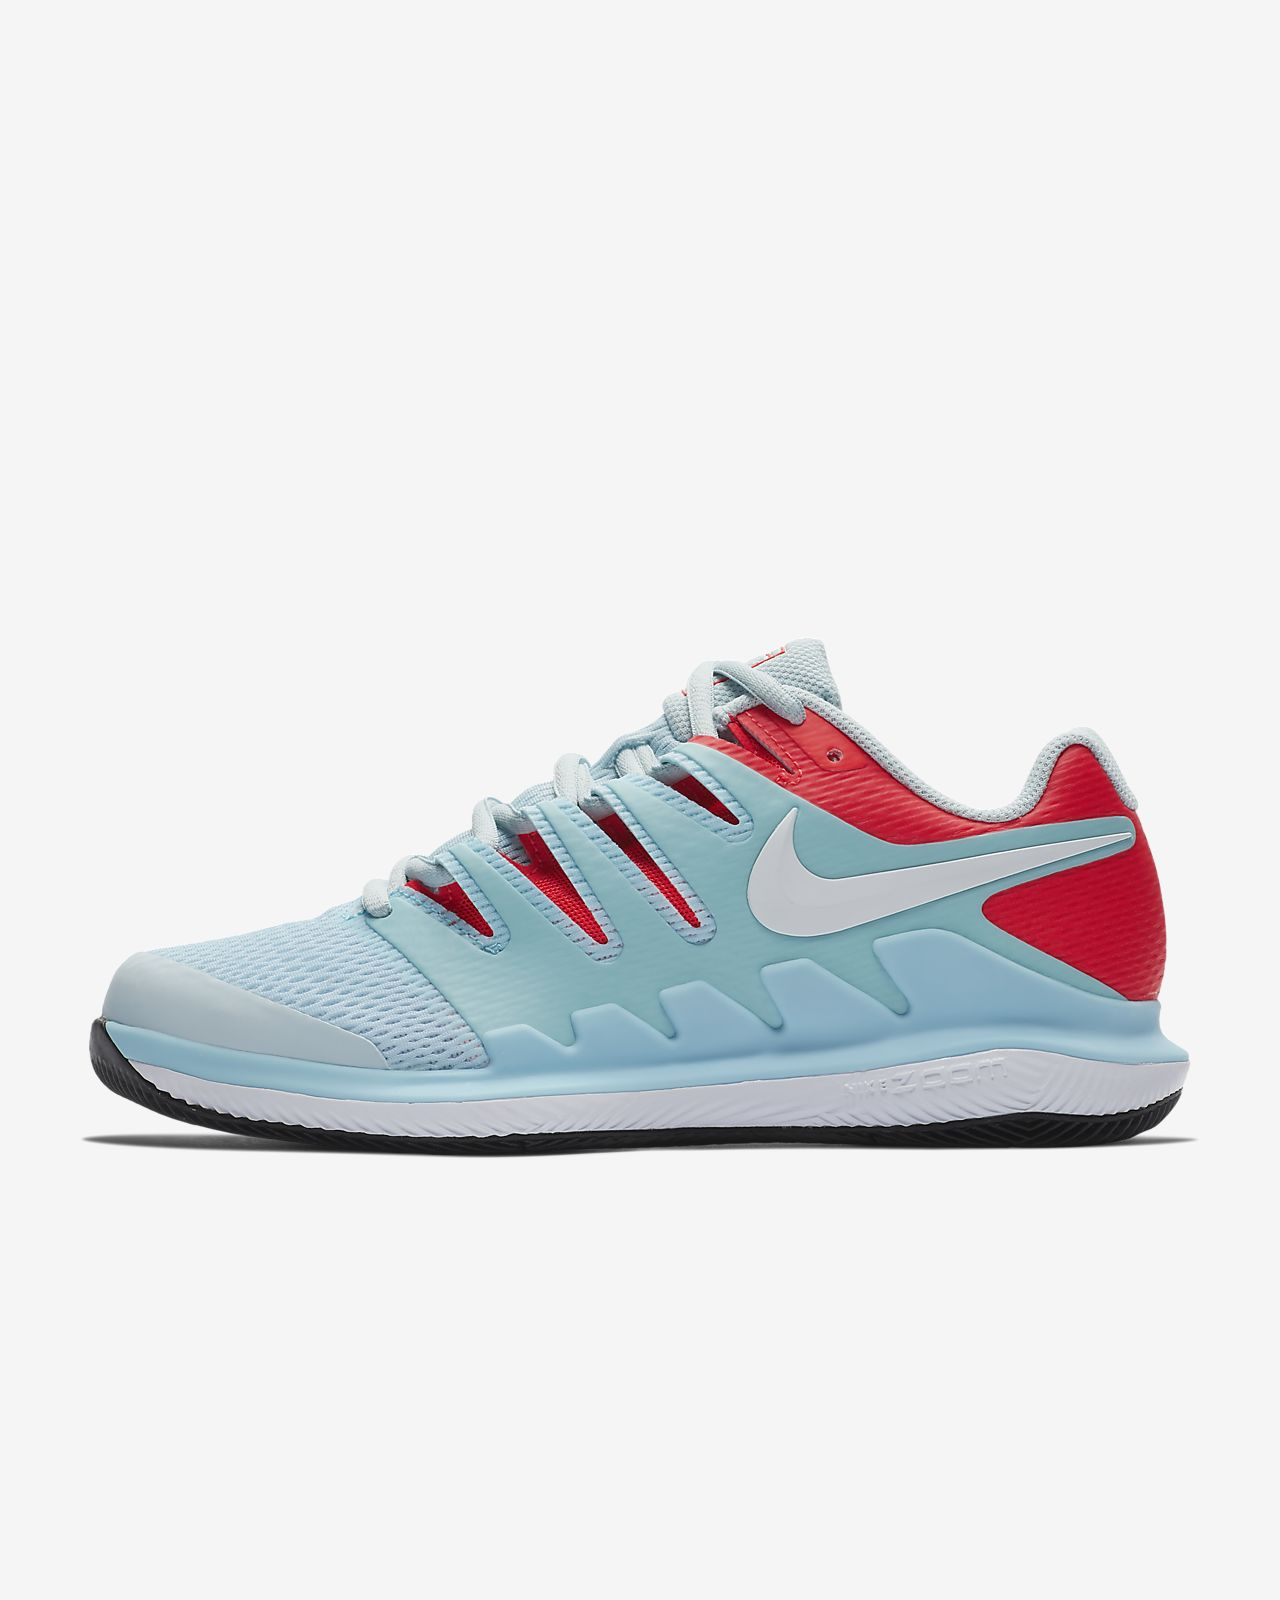 99e1b3a7c1ee NikeCourt Air Zoom Vapor X Women s Hard Court Tennis Shoe. Nike.com AU